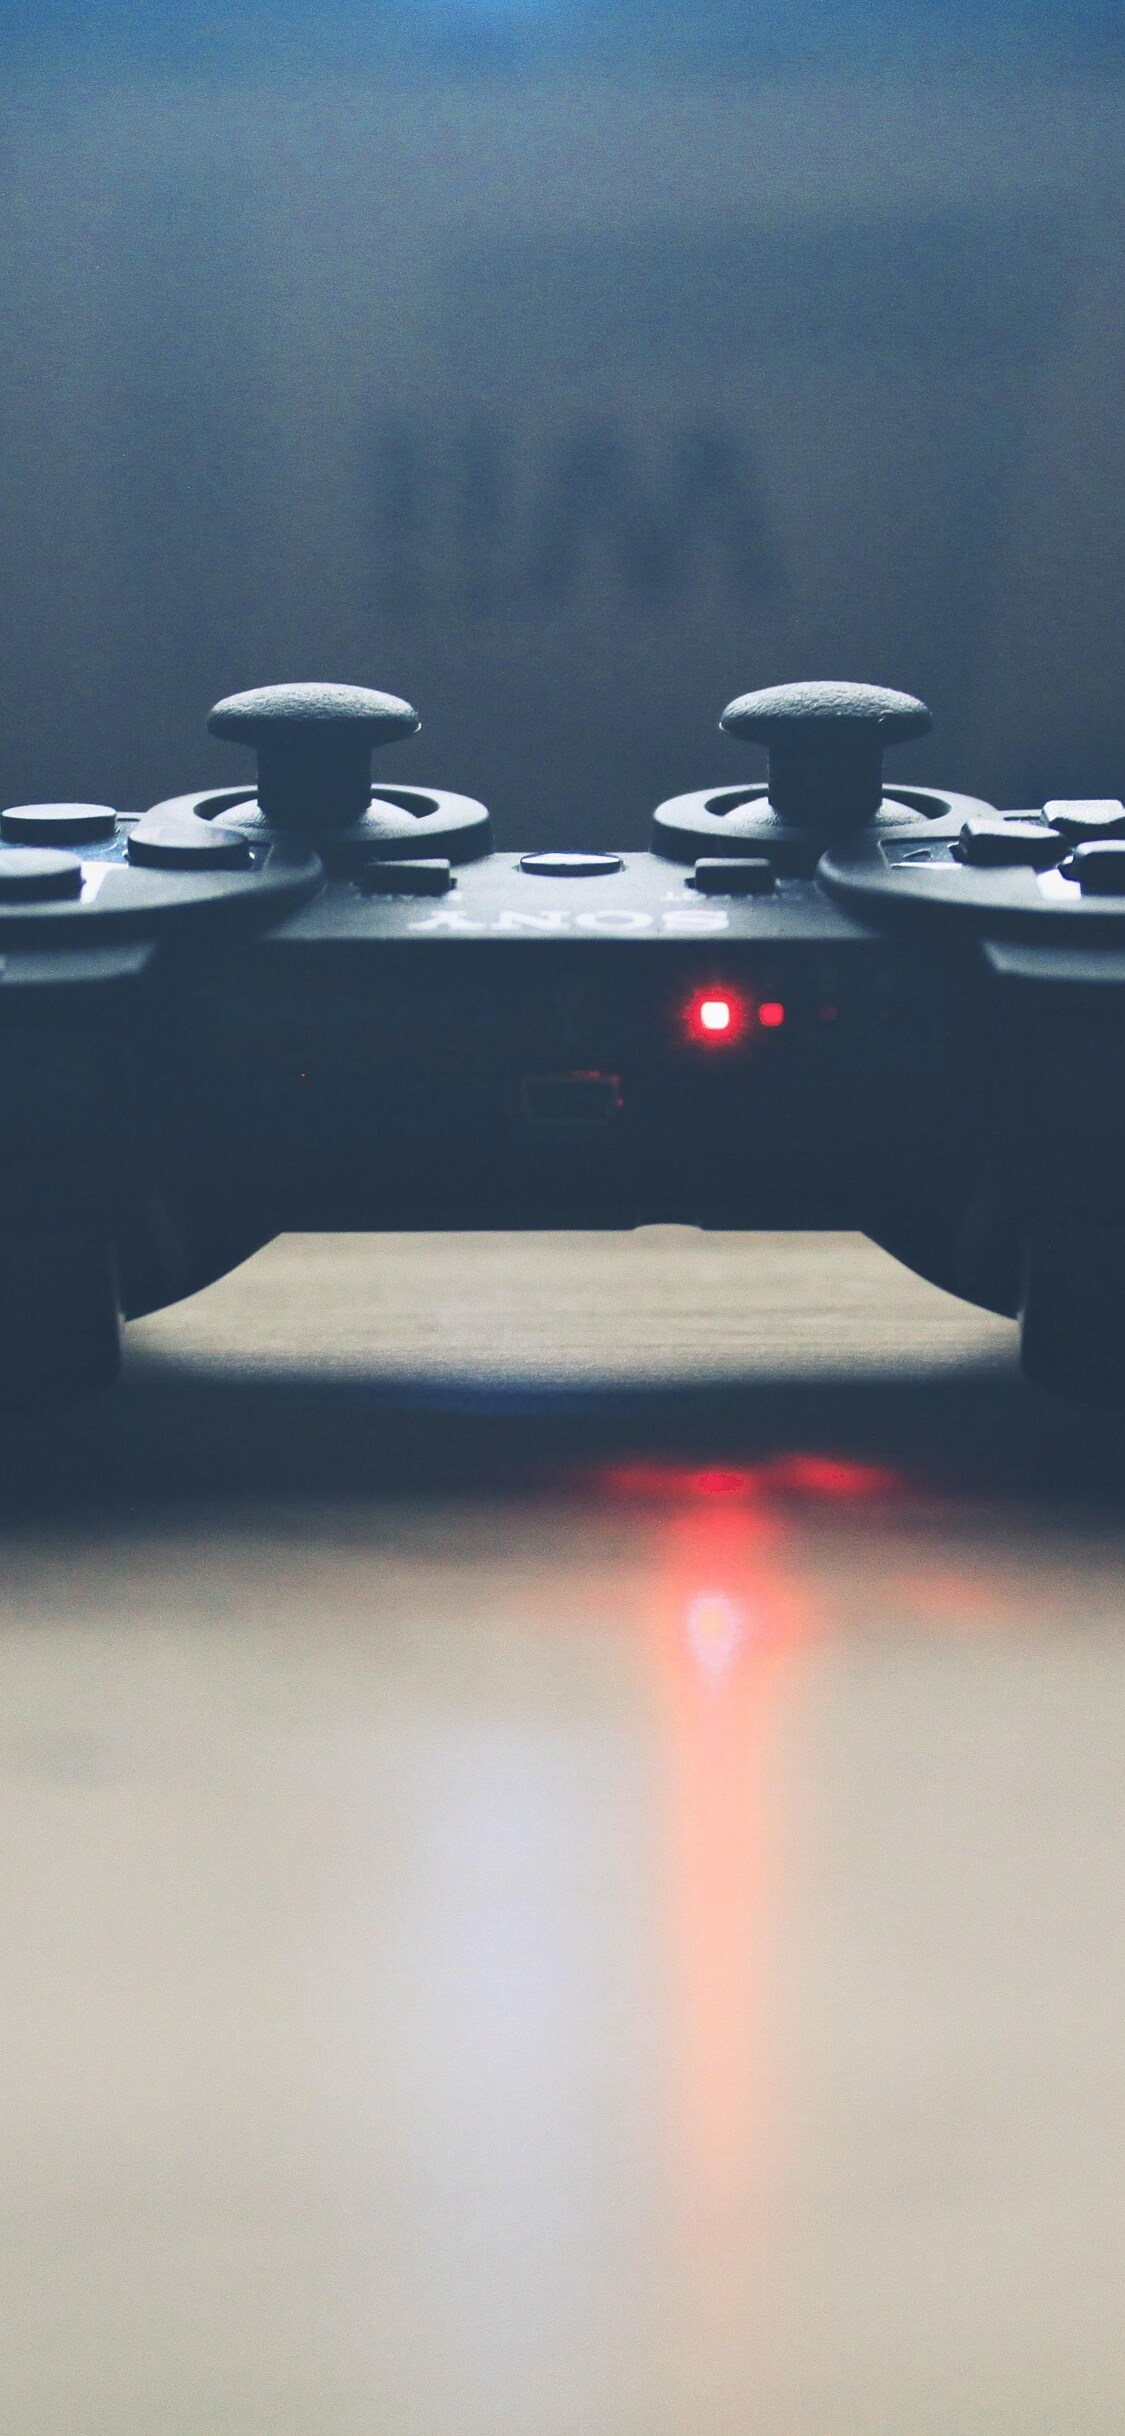 1125x2436 Playstation Joystick Iphone Xs Iphone 10 Iphone X Hd 4k Wallpapers Images Backgrounds Photos And Pictures